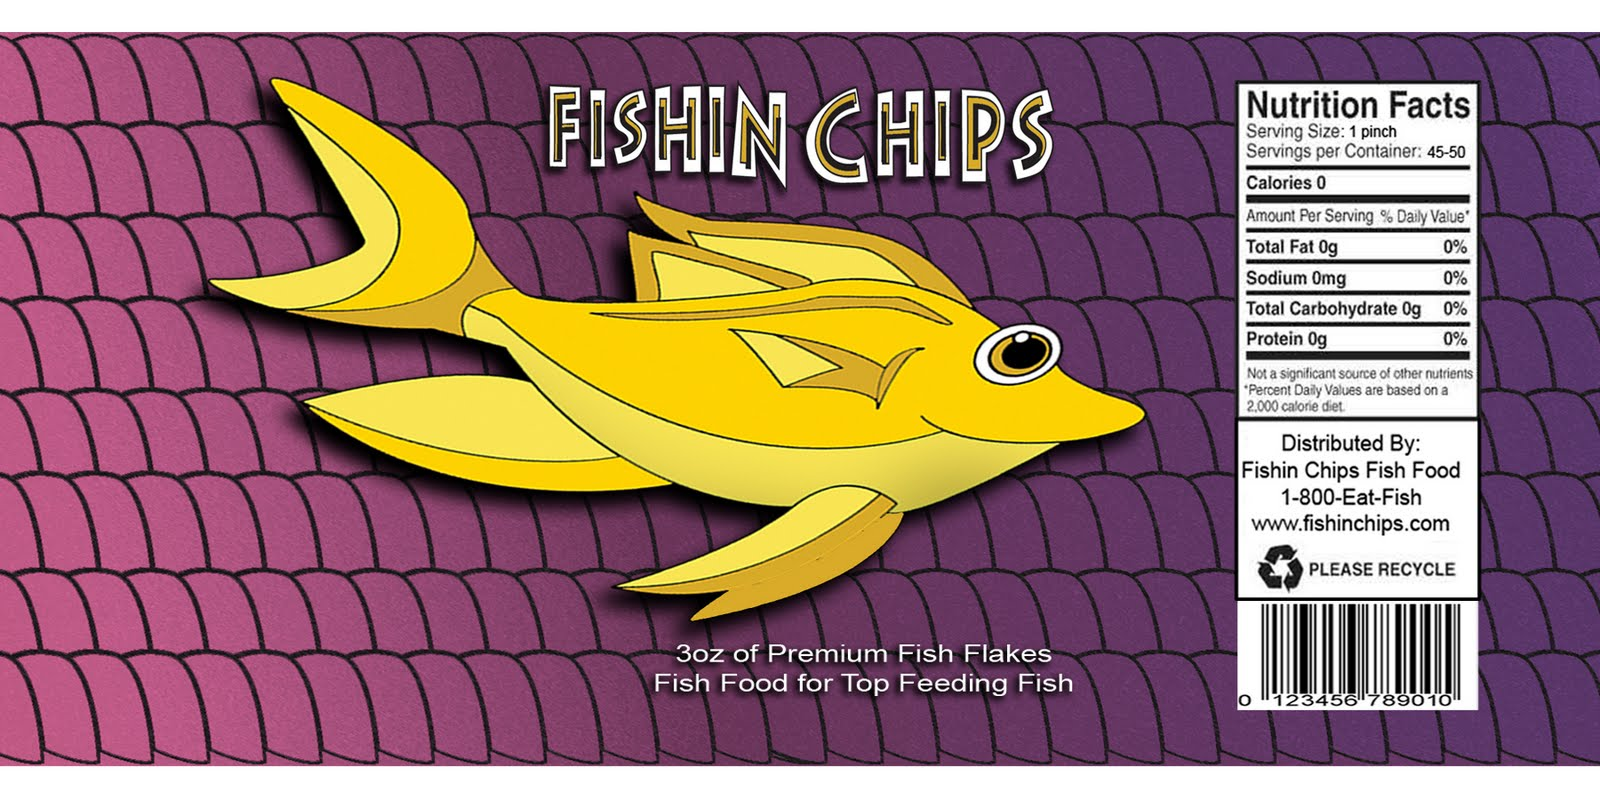 Marlin Carpenter Iii Week 5 2 Fishin Chips Fish Food